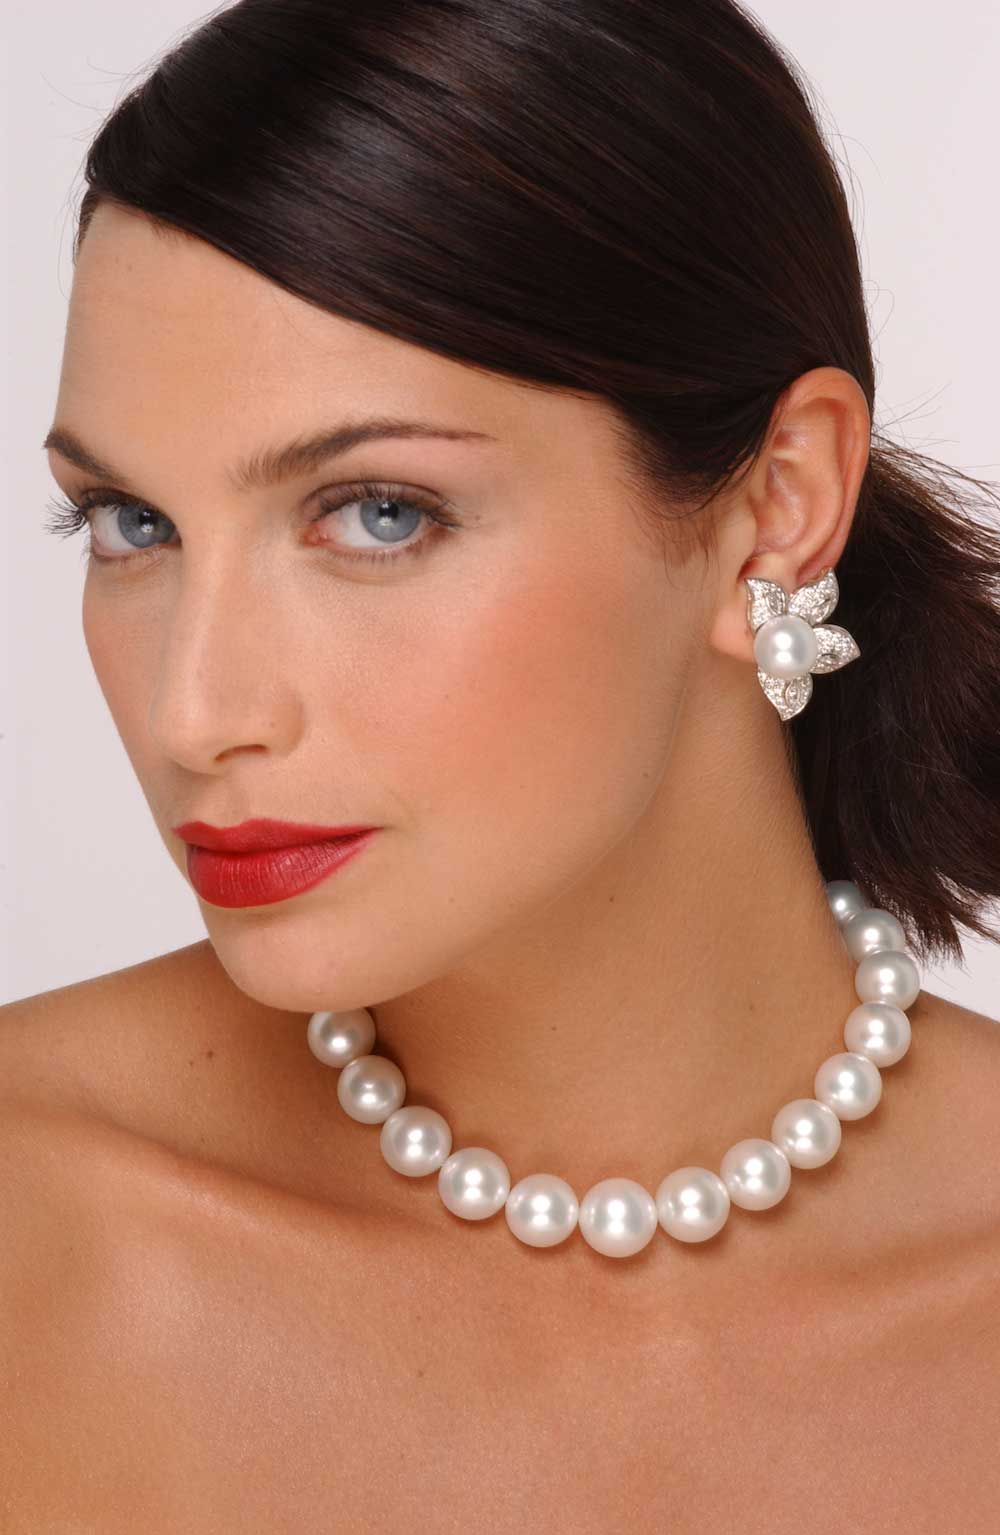 16mm To Inches >> 14 x 16mm White South Sea Pearl Necklace